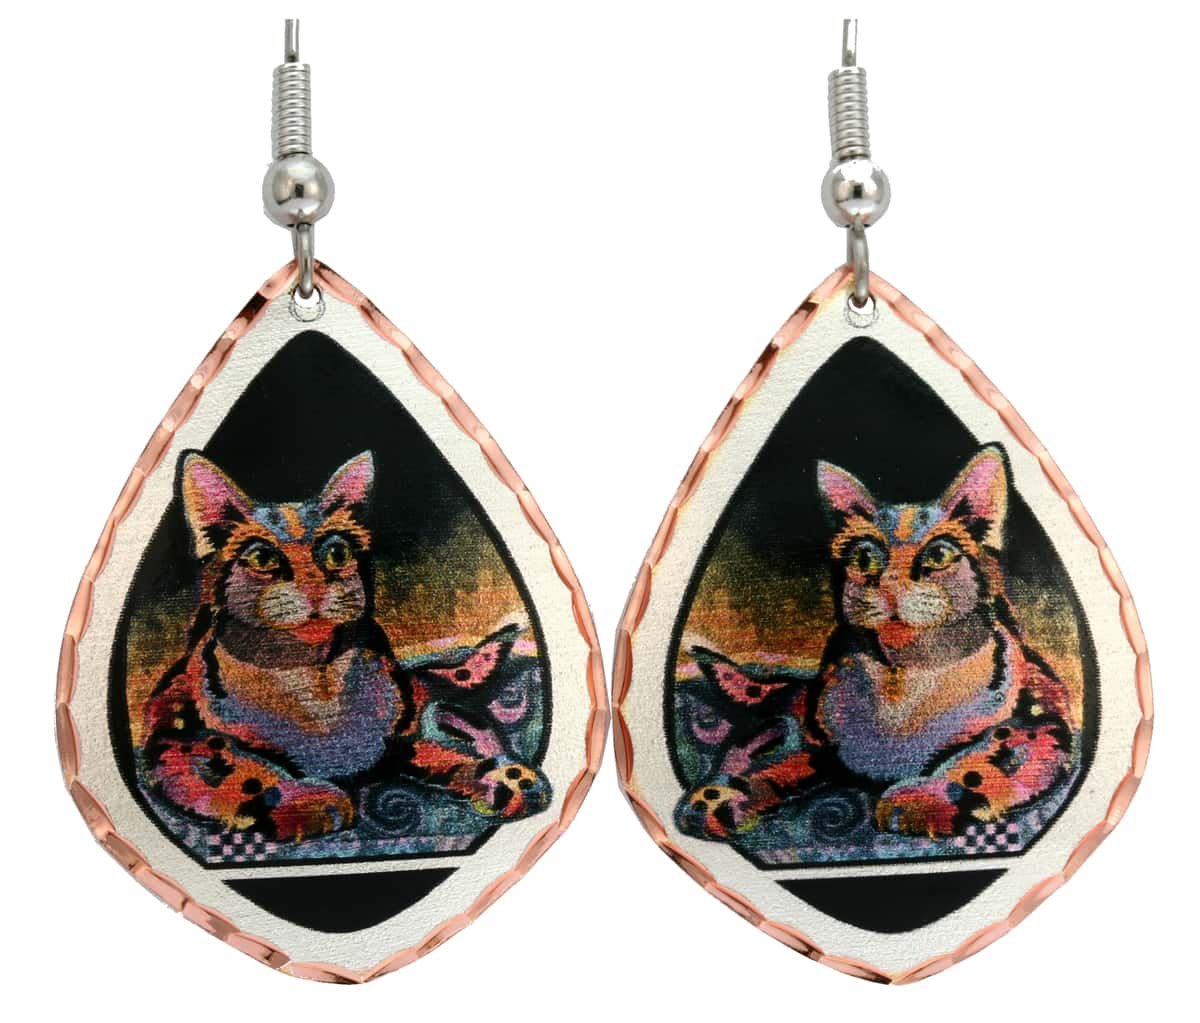 Maximillian Cat Earrings Designed by Bob Coonts